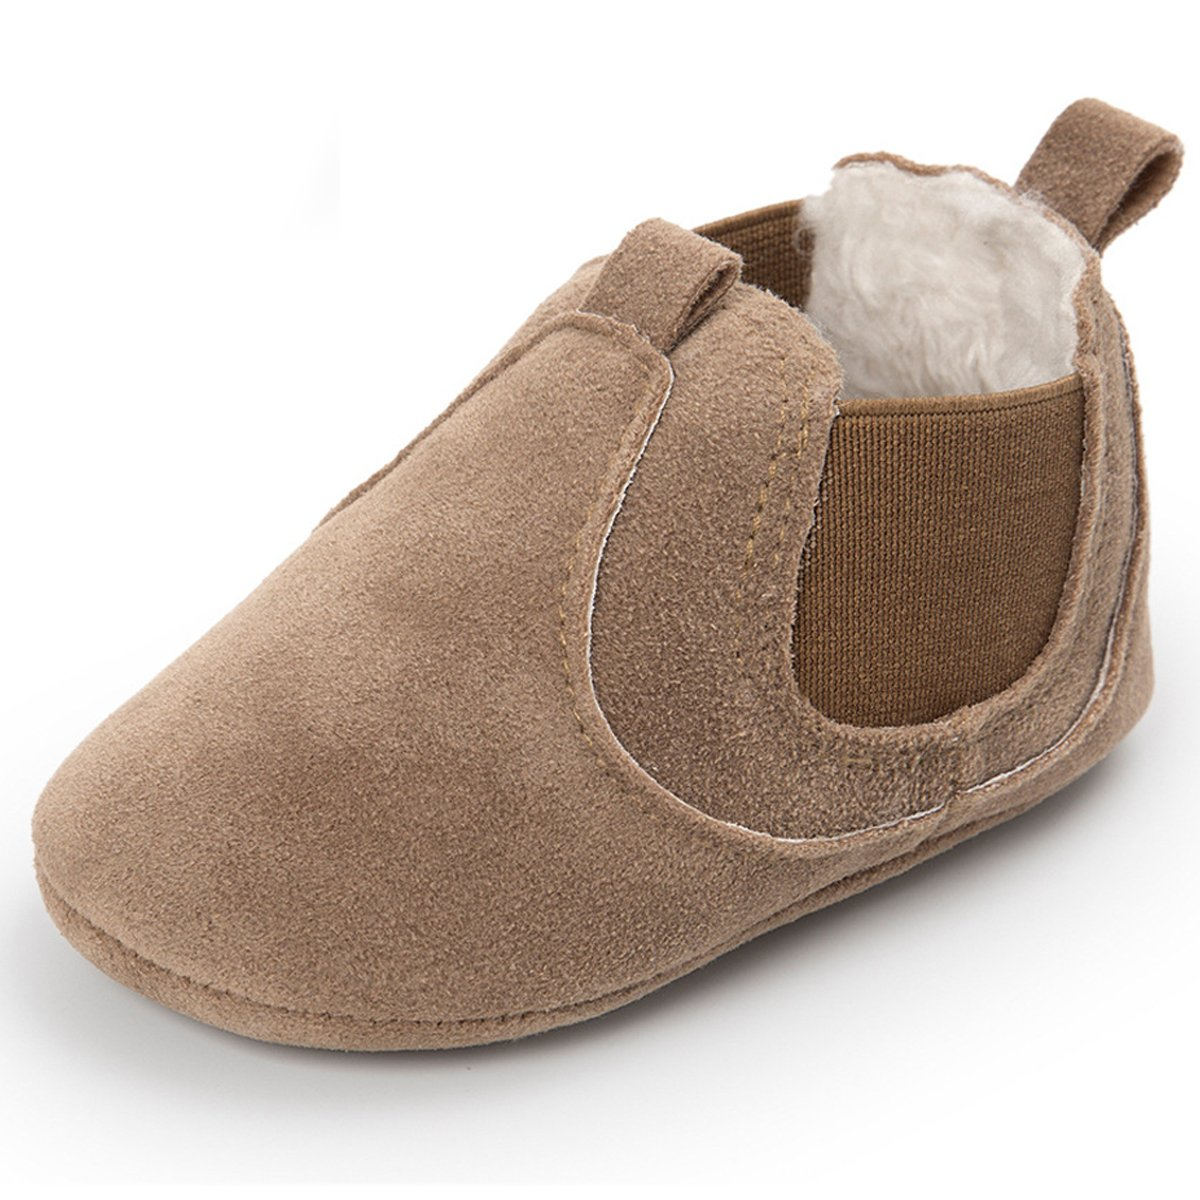 Sabe Baby Girls Soft Leather Sole Hi-Top Booties Non-Slip Moccasin First Walking Shoes 0-18 Months Prewalkers 5288